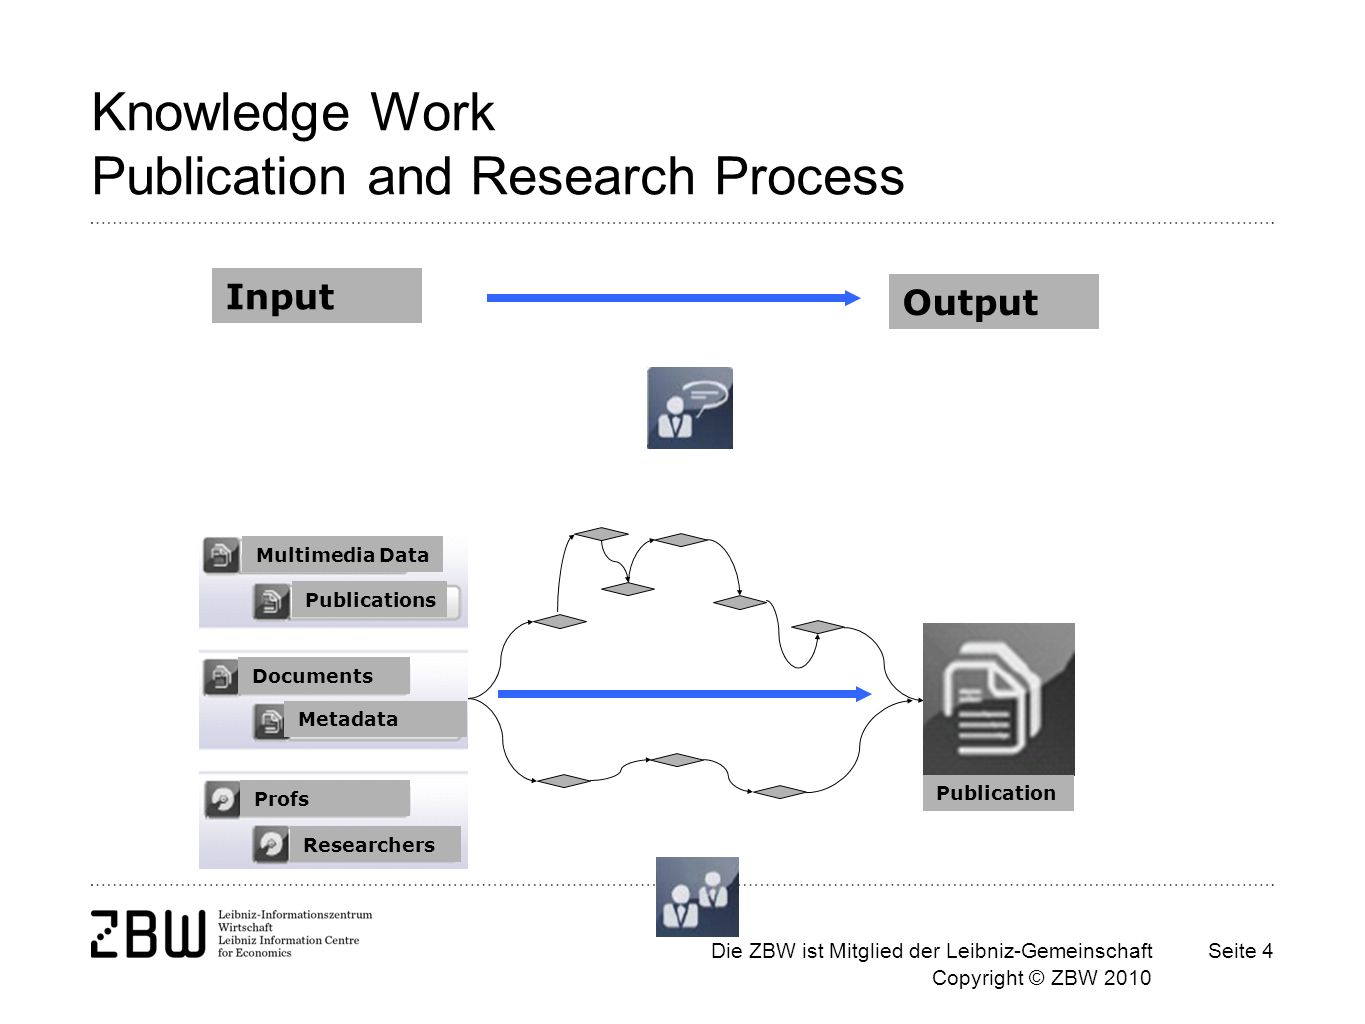 Die ZBW ist Mitglied der Leibniz-Gemeinschaft Copyright © ZBW 2010 Seite 4 Knowledge Work Publication and Research Process Multimedia Data Publications Documents Metadata Profs Researchers Publication Input Output